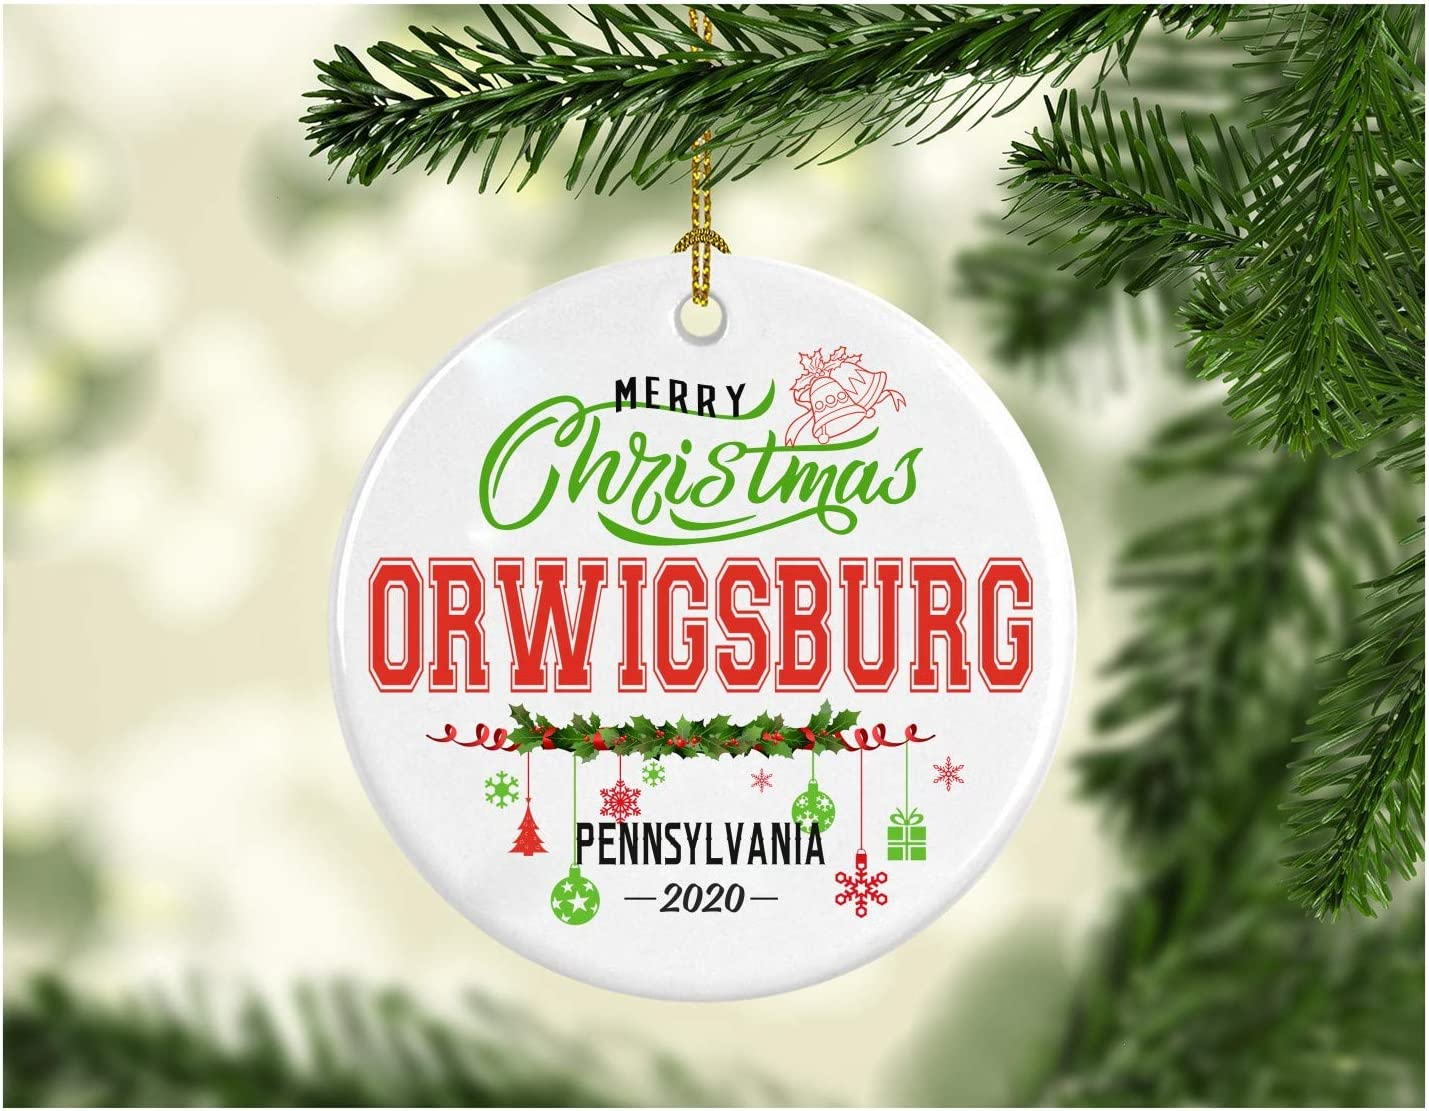 Christmas Decorations Tree Ornament - Gifts Hometown State - Merry Christmas Orwigsburg Pennsylvania 2020 - Gift for Family Rustic 1St Xmas Tree in Our New Home 3 Inches White